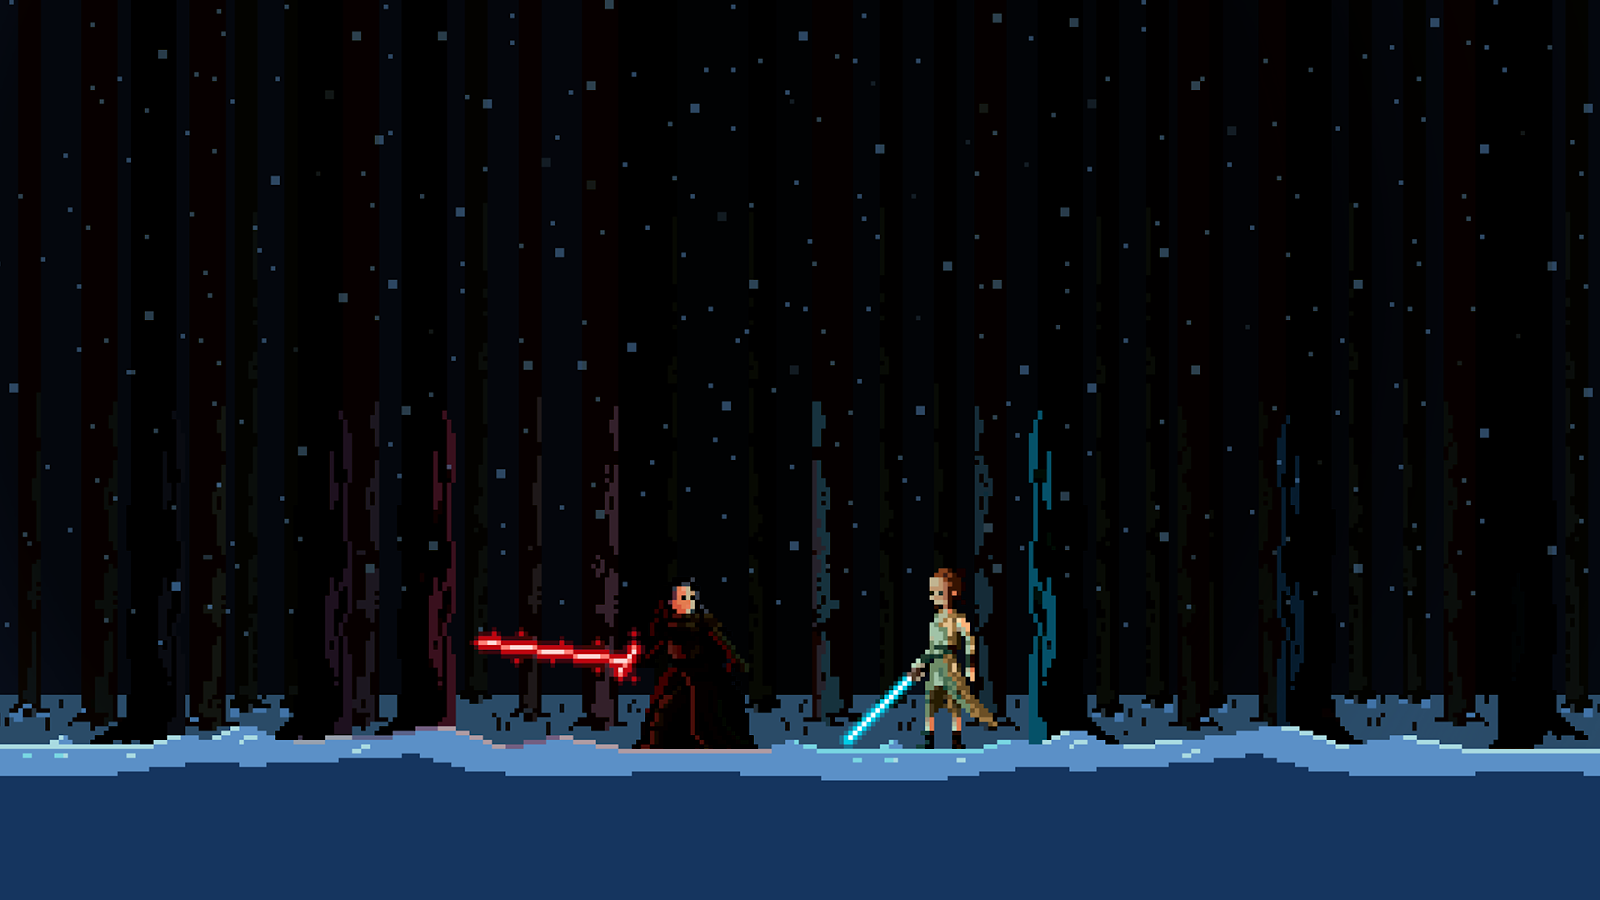 Wallpaper Desktop Star Wars Pixel Art Heroscreen Cool Wallpapers